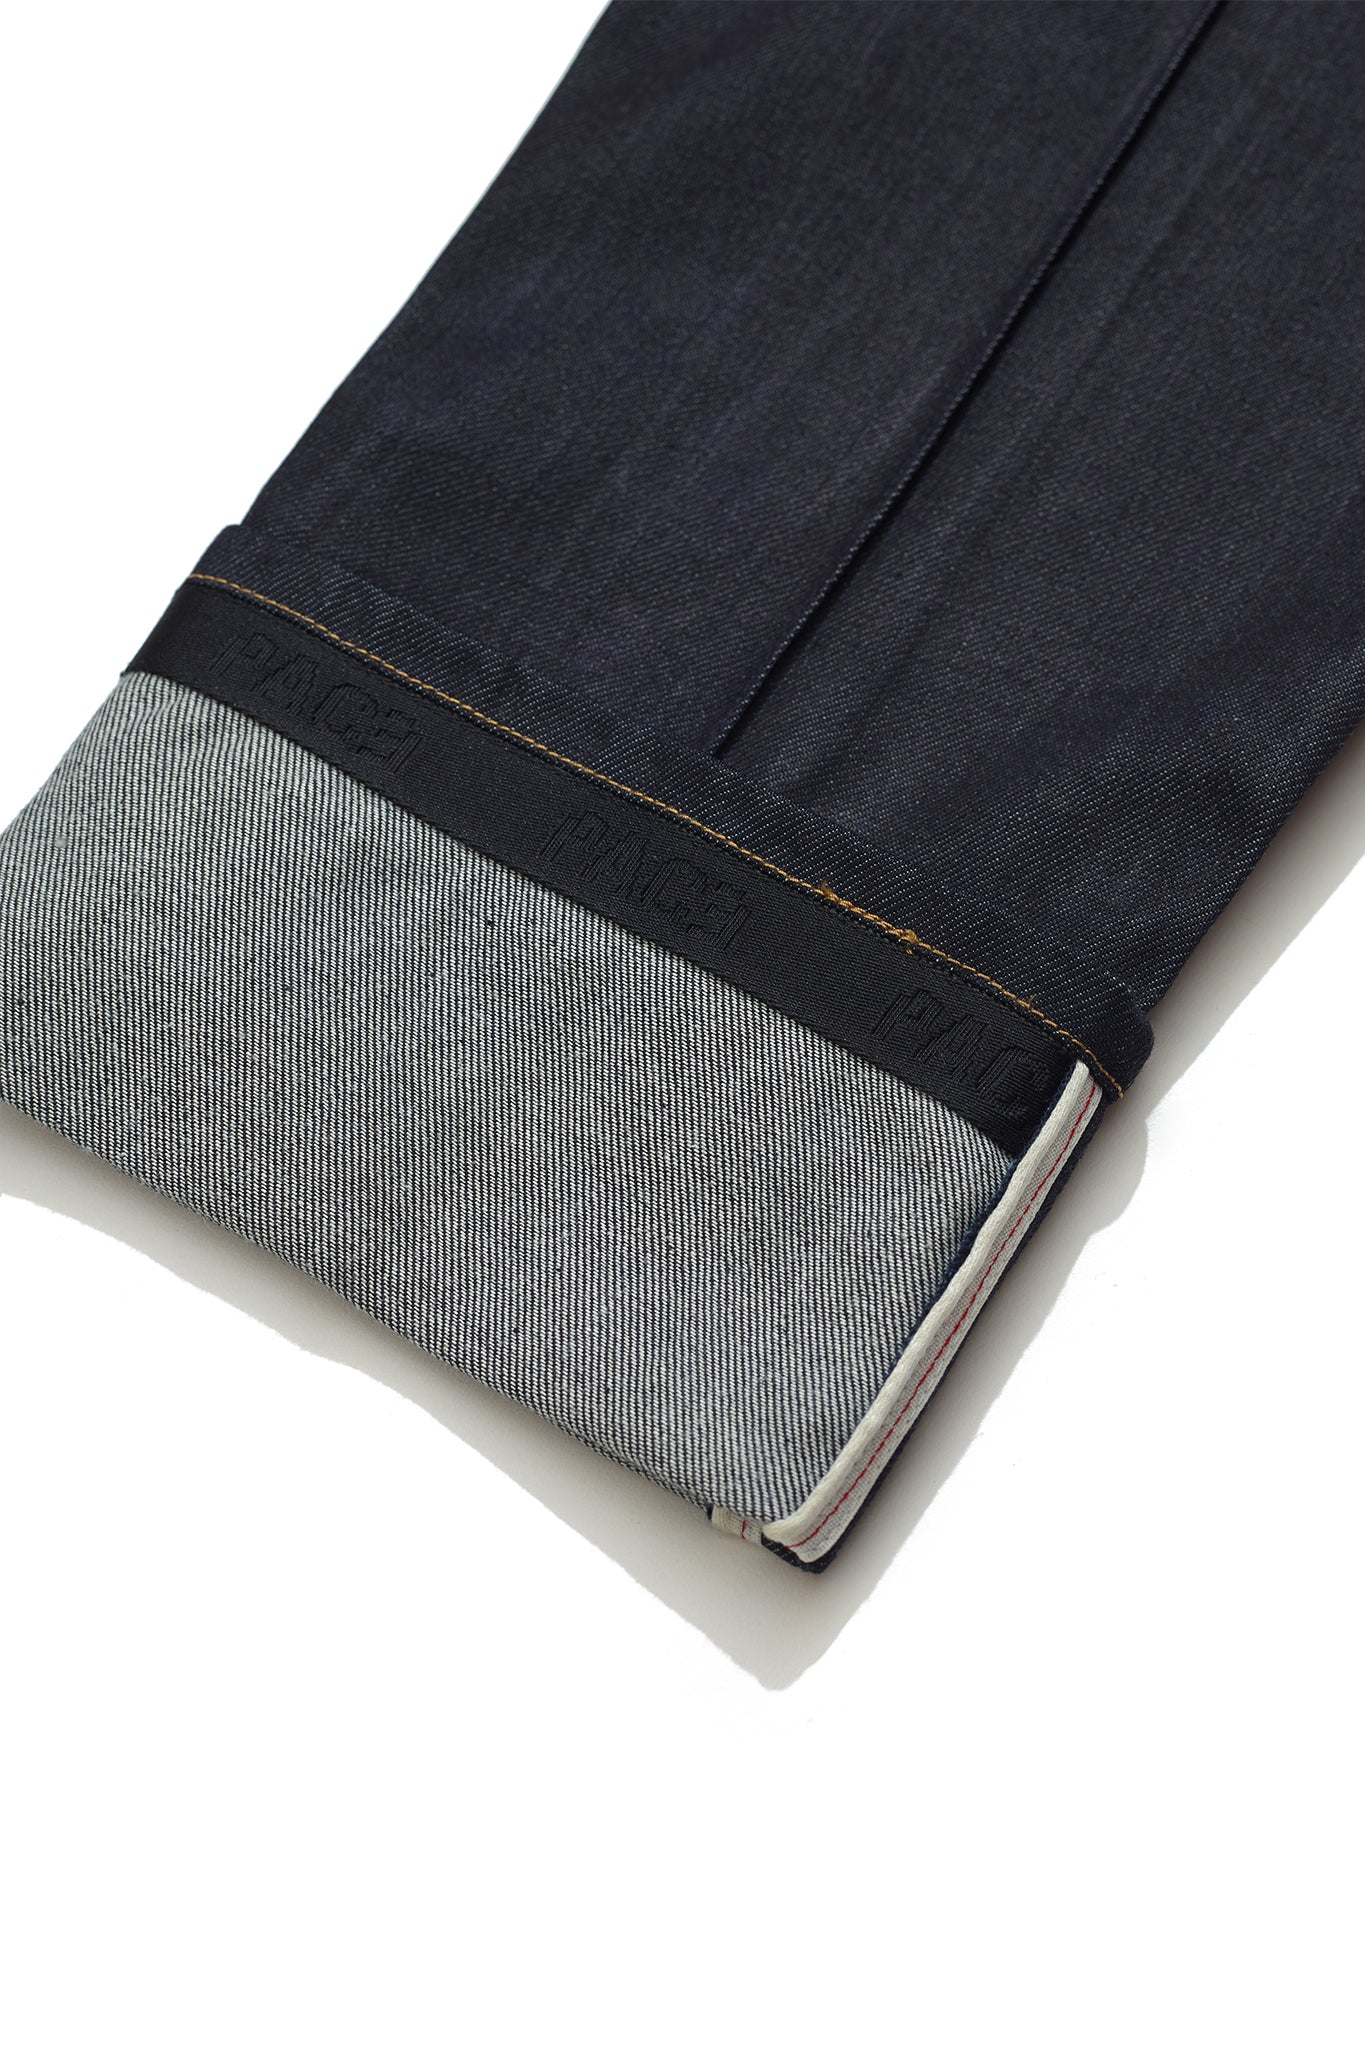 5-POCKET WEDGWOOD INDIGO HKS5 11.8OZ 100% JAPANESE RAW DENIM